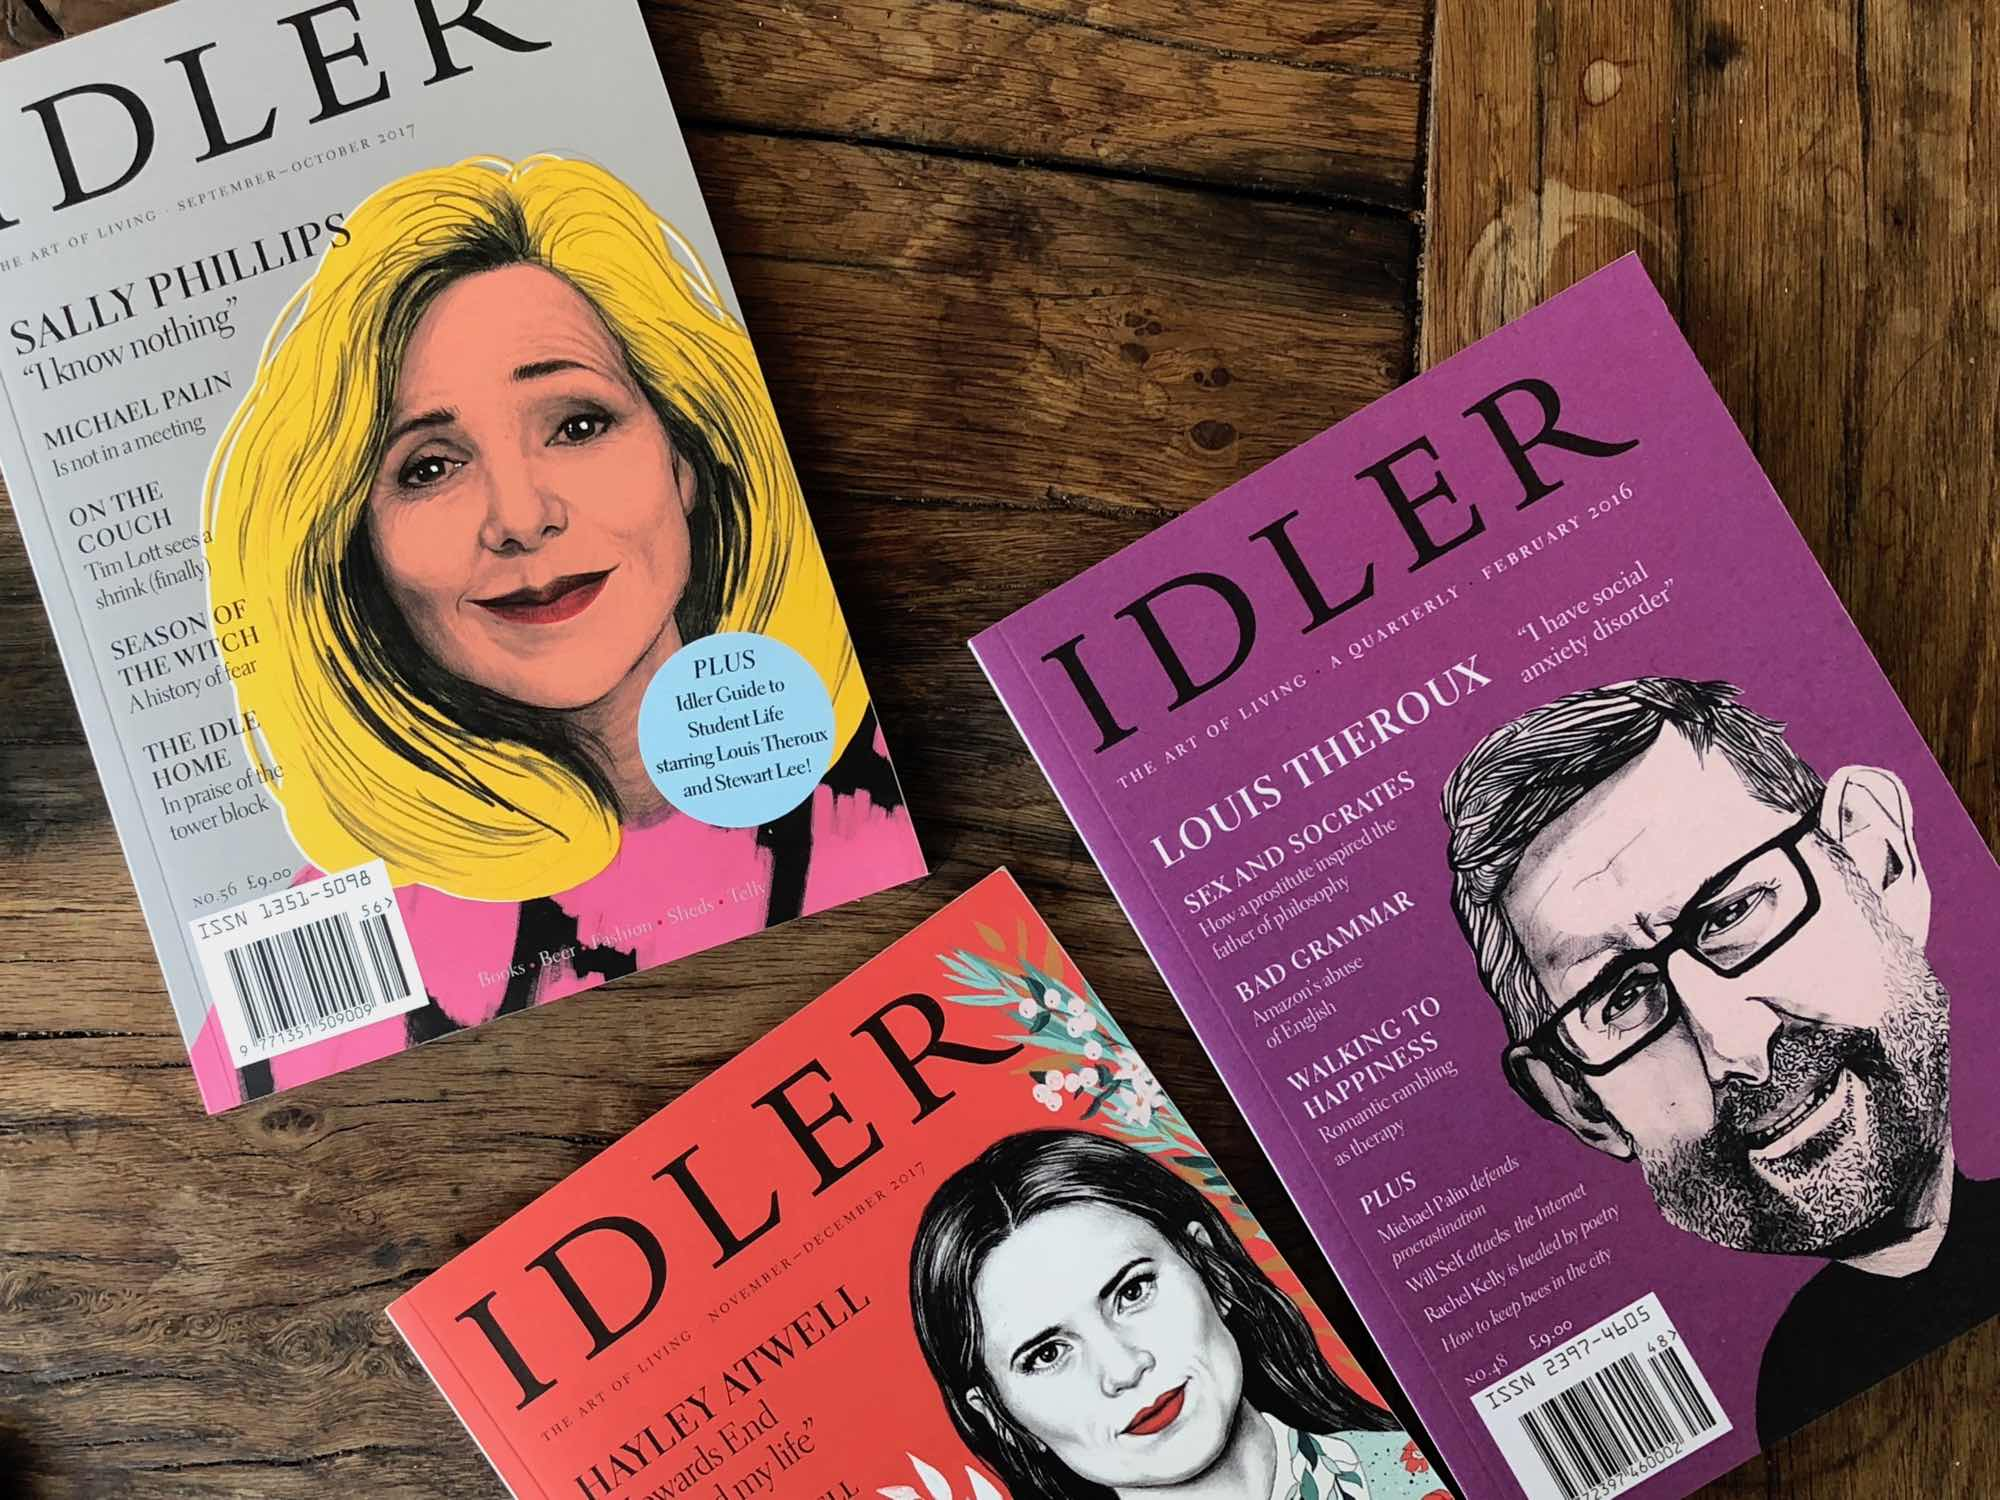 Idler Magazine covers with Louis Theroux, Sally Phillips, Hayley Atwell — Fabulous Fabsters